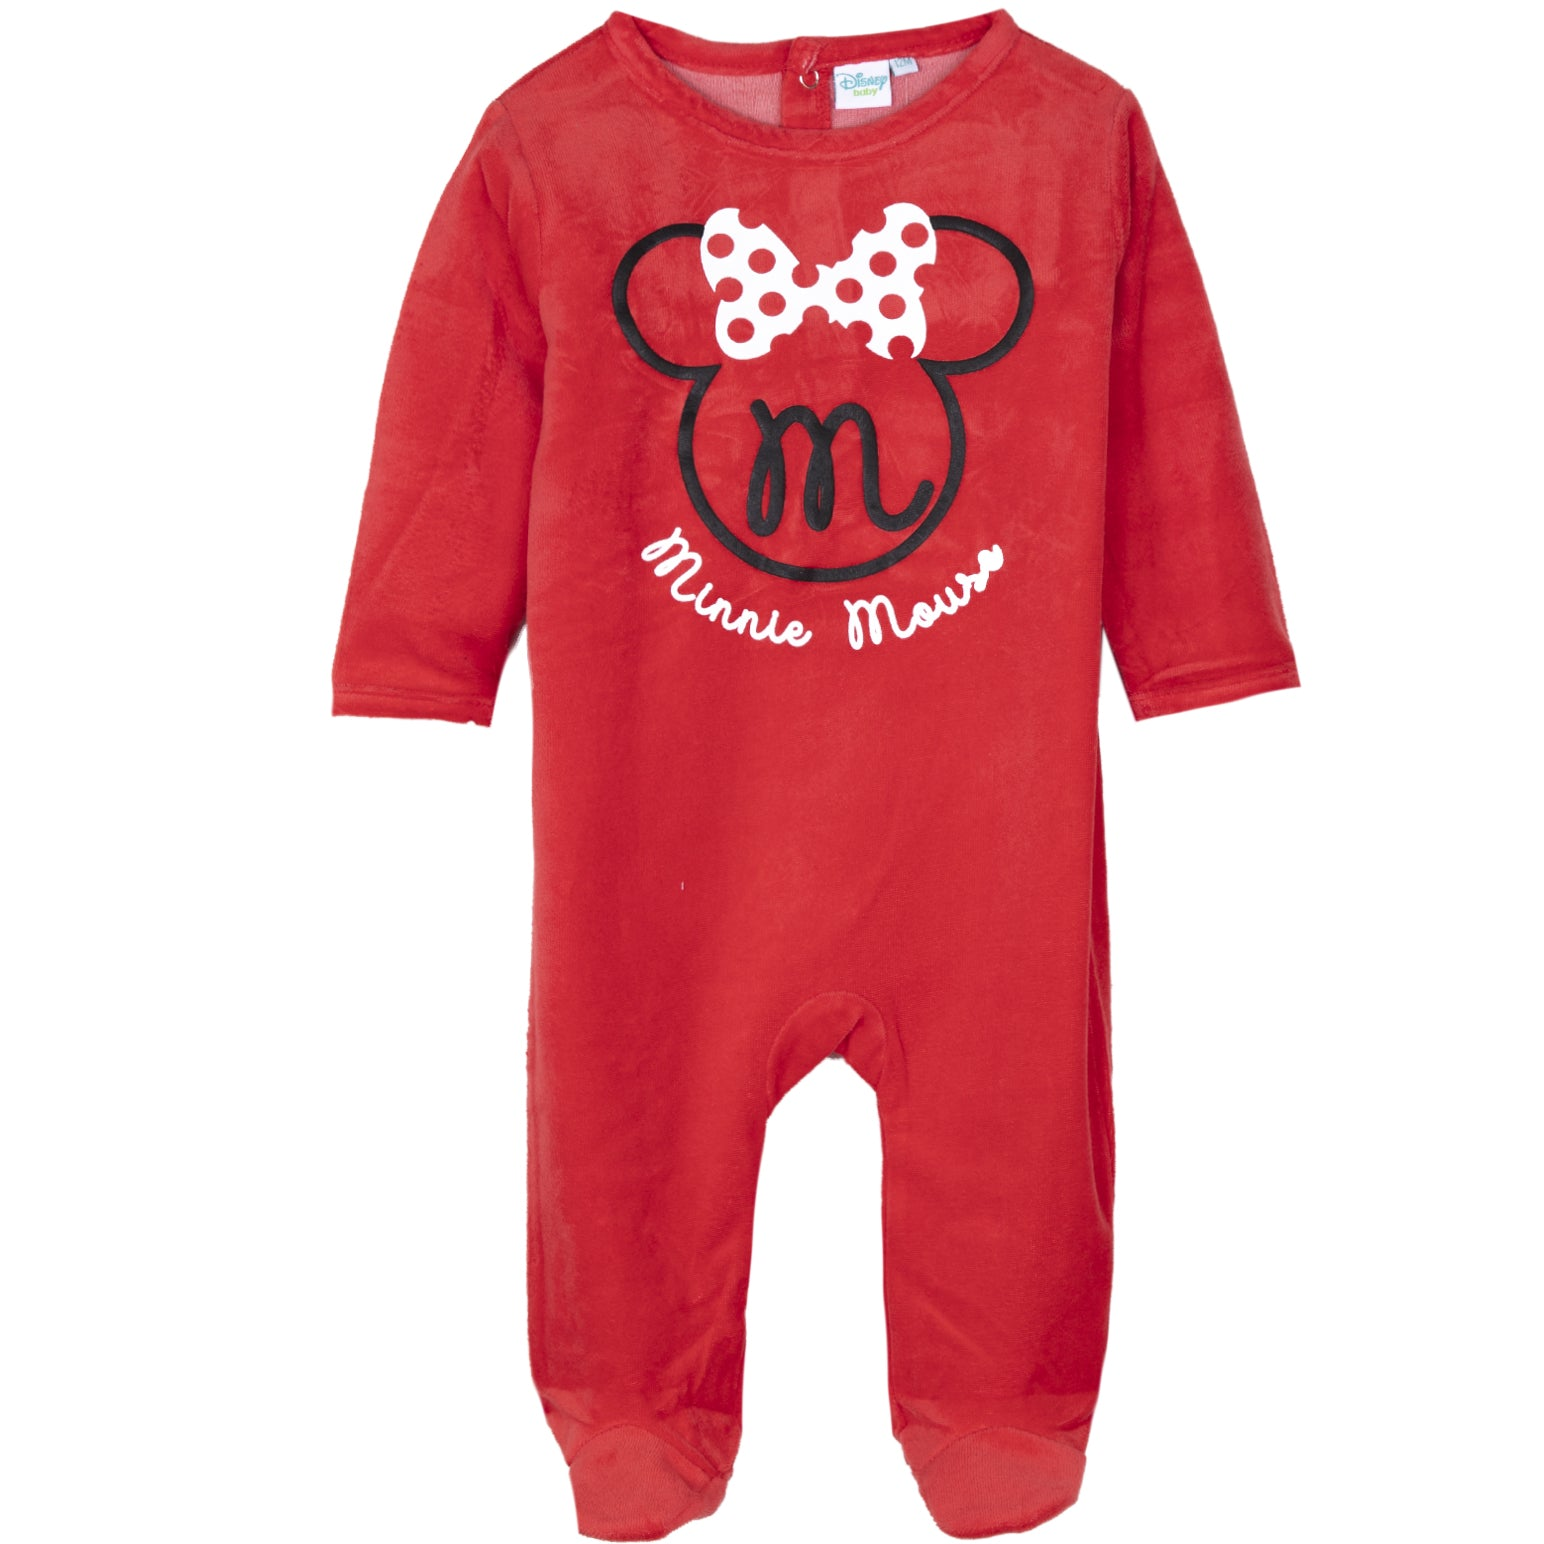 Disney Minnie Mouse Baby Girls Velvet Sleepsuit, Footie 0-24 Months - Red